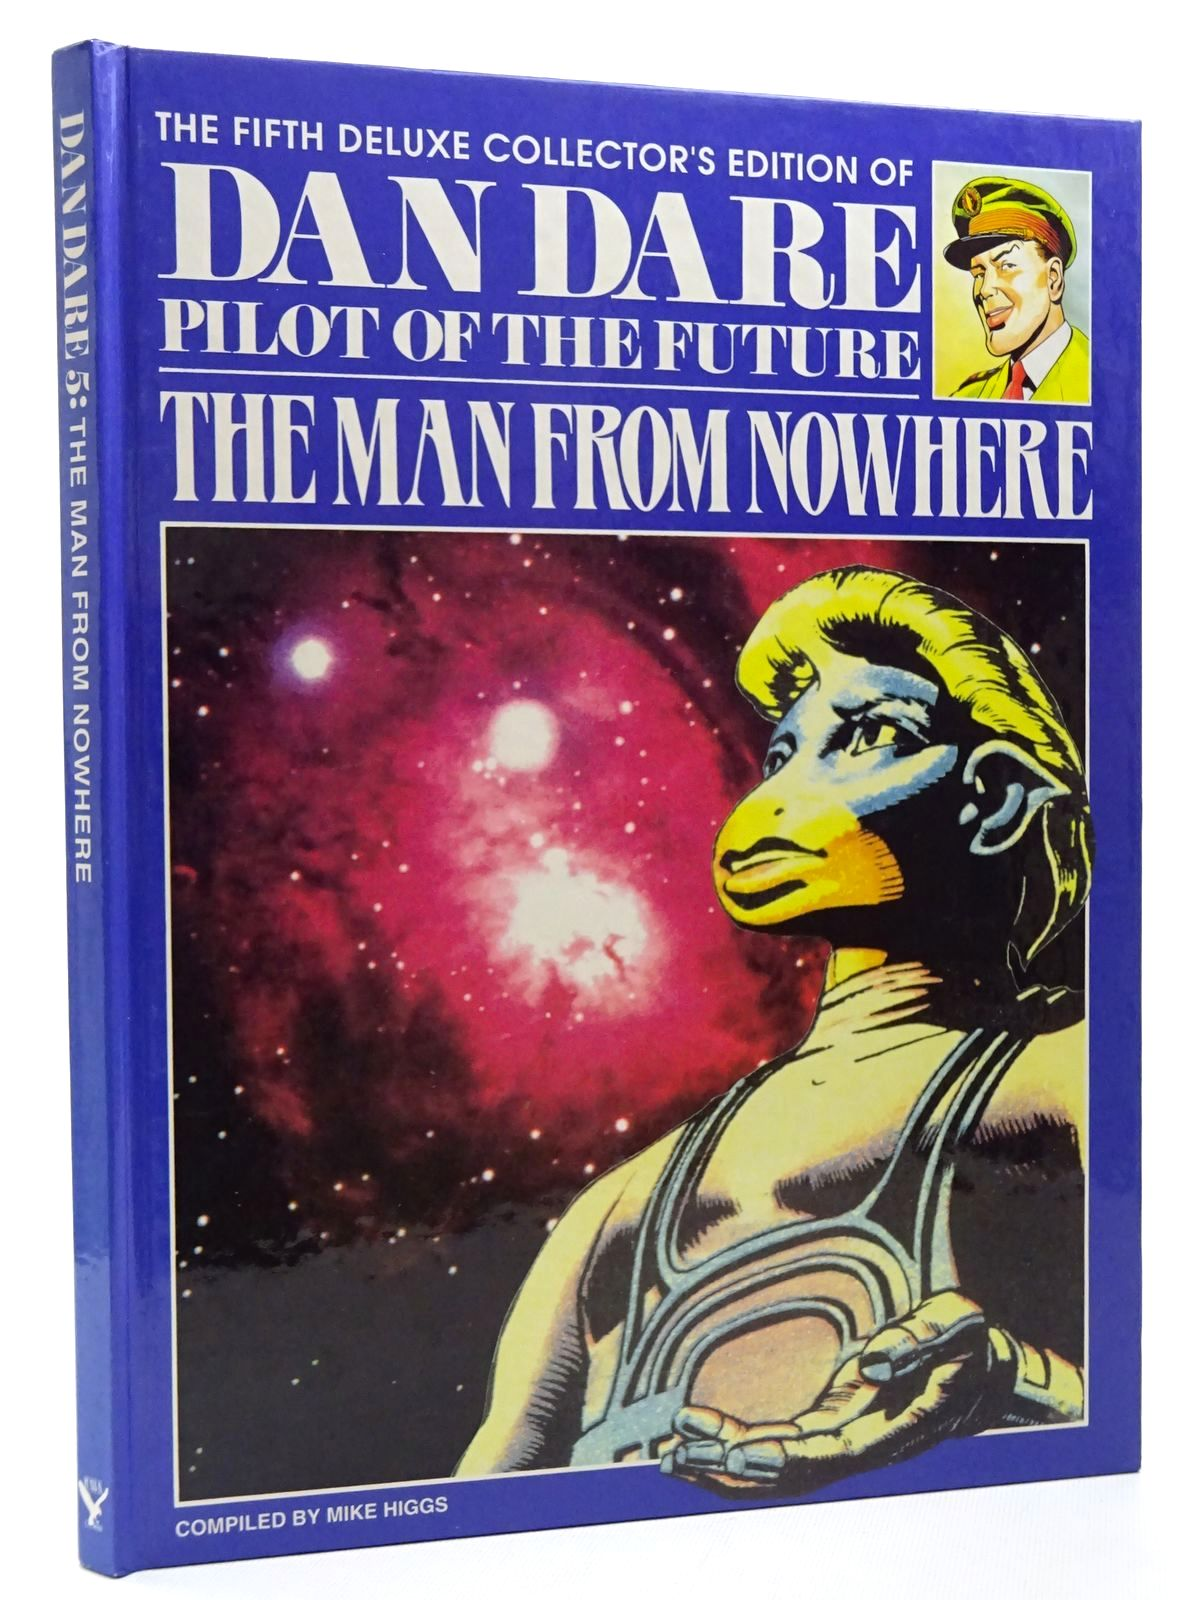 Photo of THE FIFTH DELUXE COLLECTOR'S EDITION OF DAN DARE PILOT OF THE FUTURE THE MAN FROM NOWHERE written by Higgs, Mike published by Hawk Books (STOCK CODE: 2124552)  for sale by Stella & Rose's Books